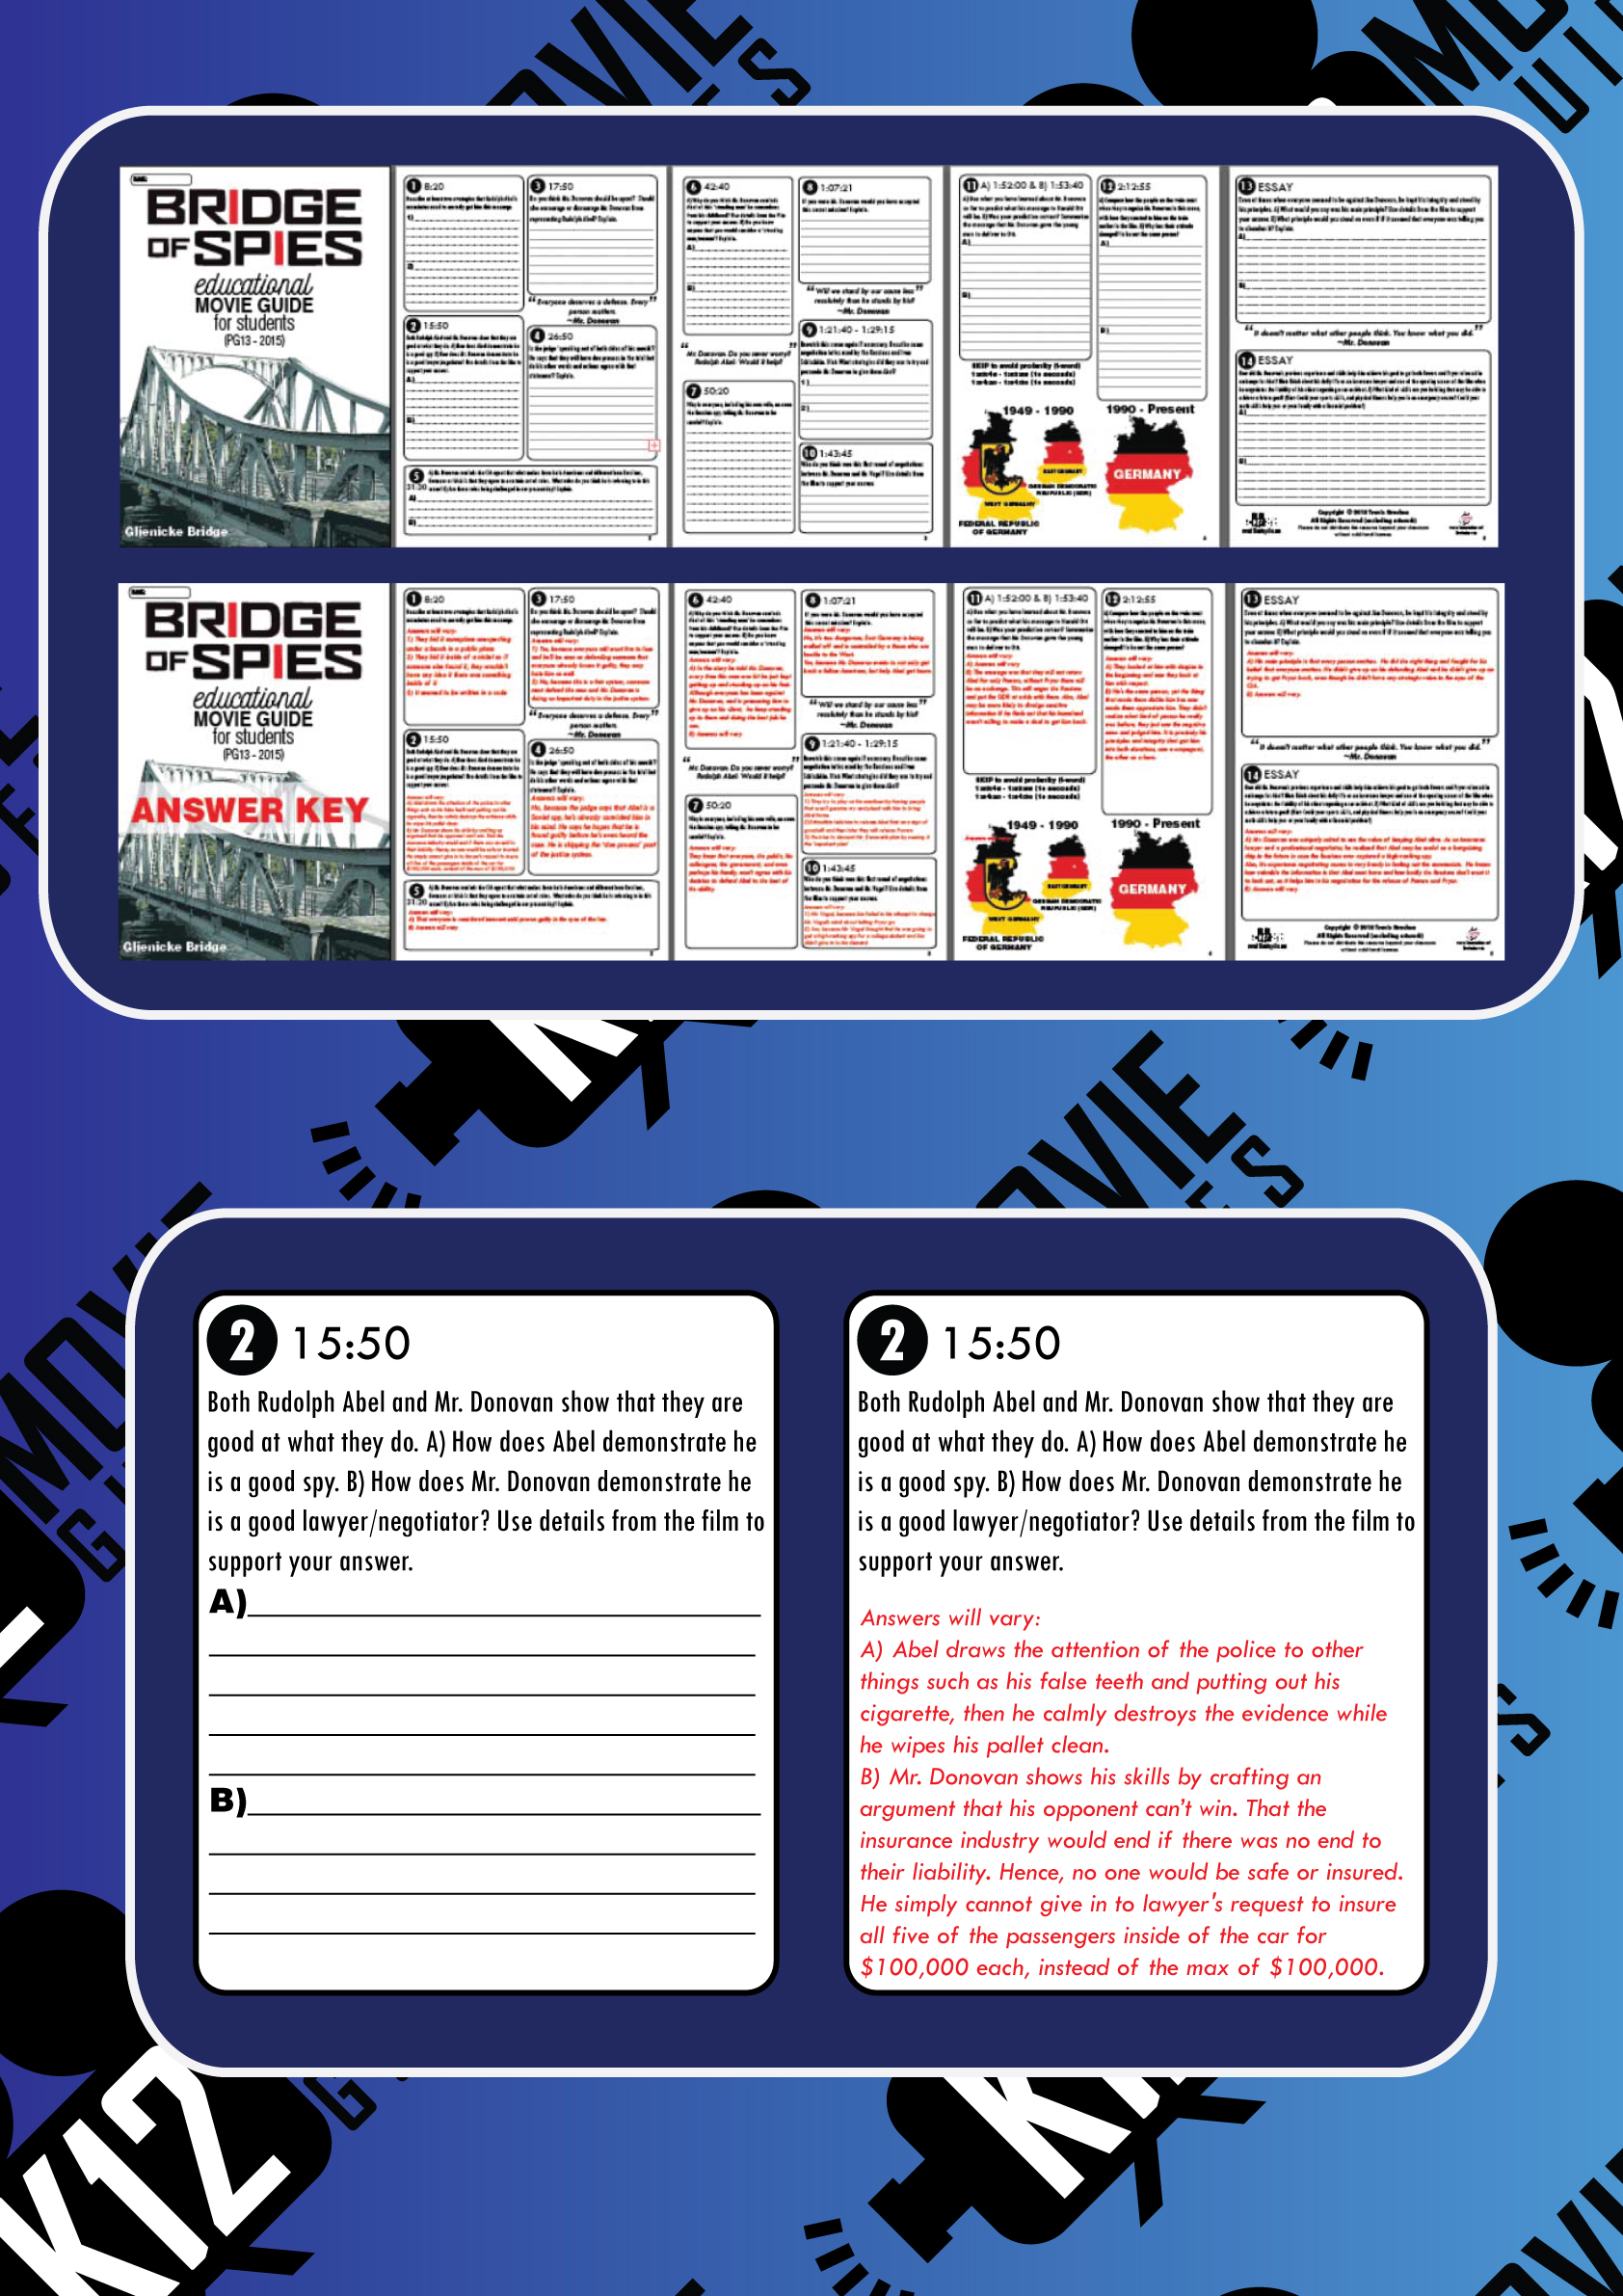 Bridge of Spies Movie Guide | Questions | Worksheet (PG13 - 2015) Sample